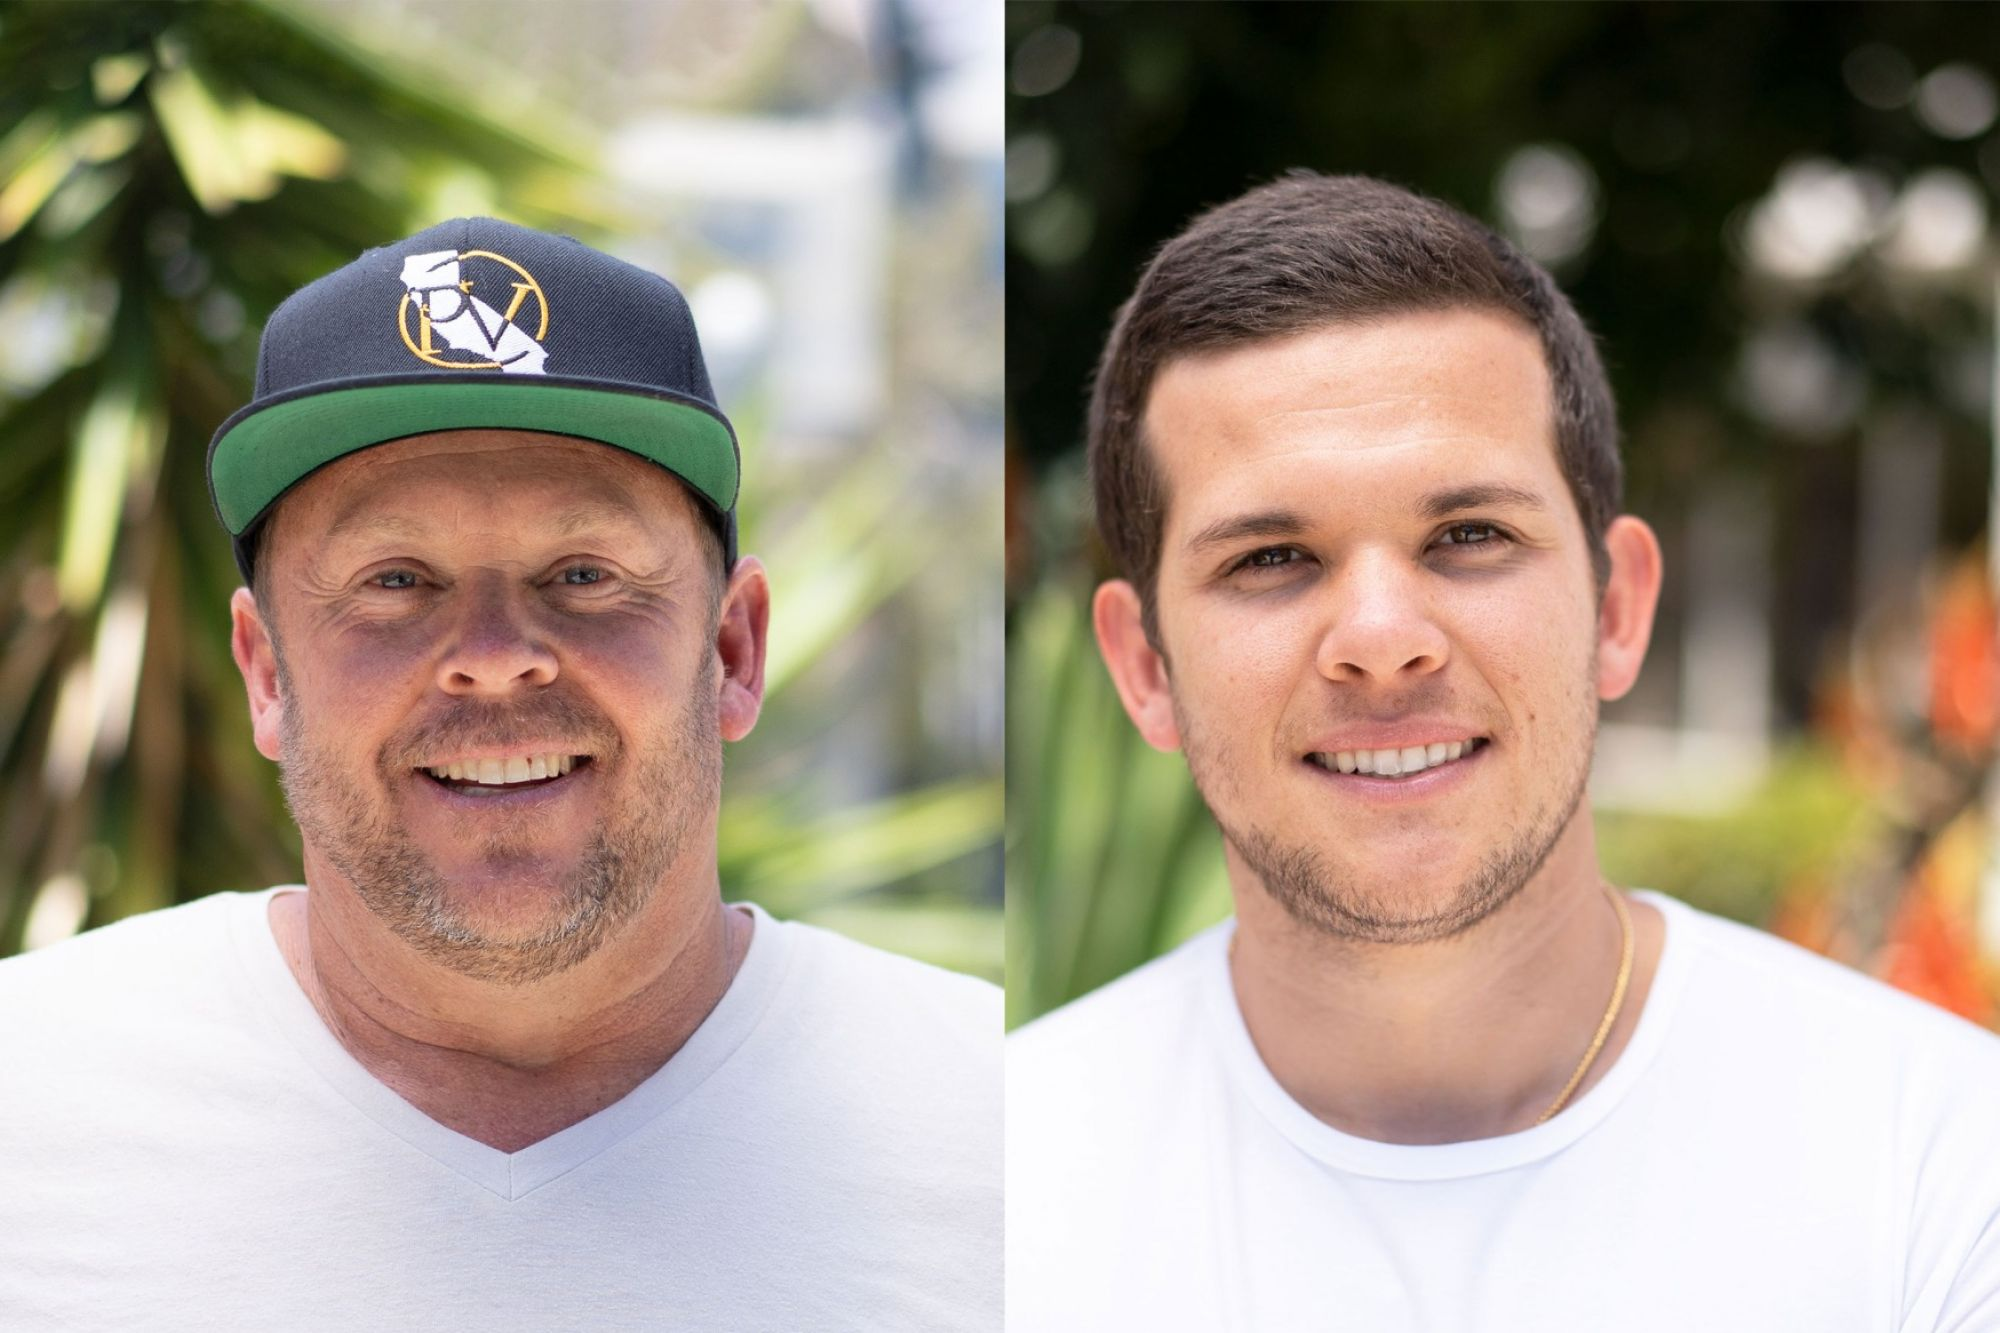 This Father-Son Team Built a Multimillion Dollar Cannabis Business With The Money They Made Selling A Used Dirt Bike